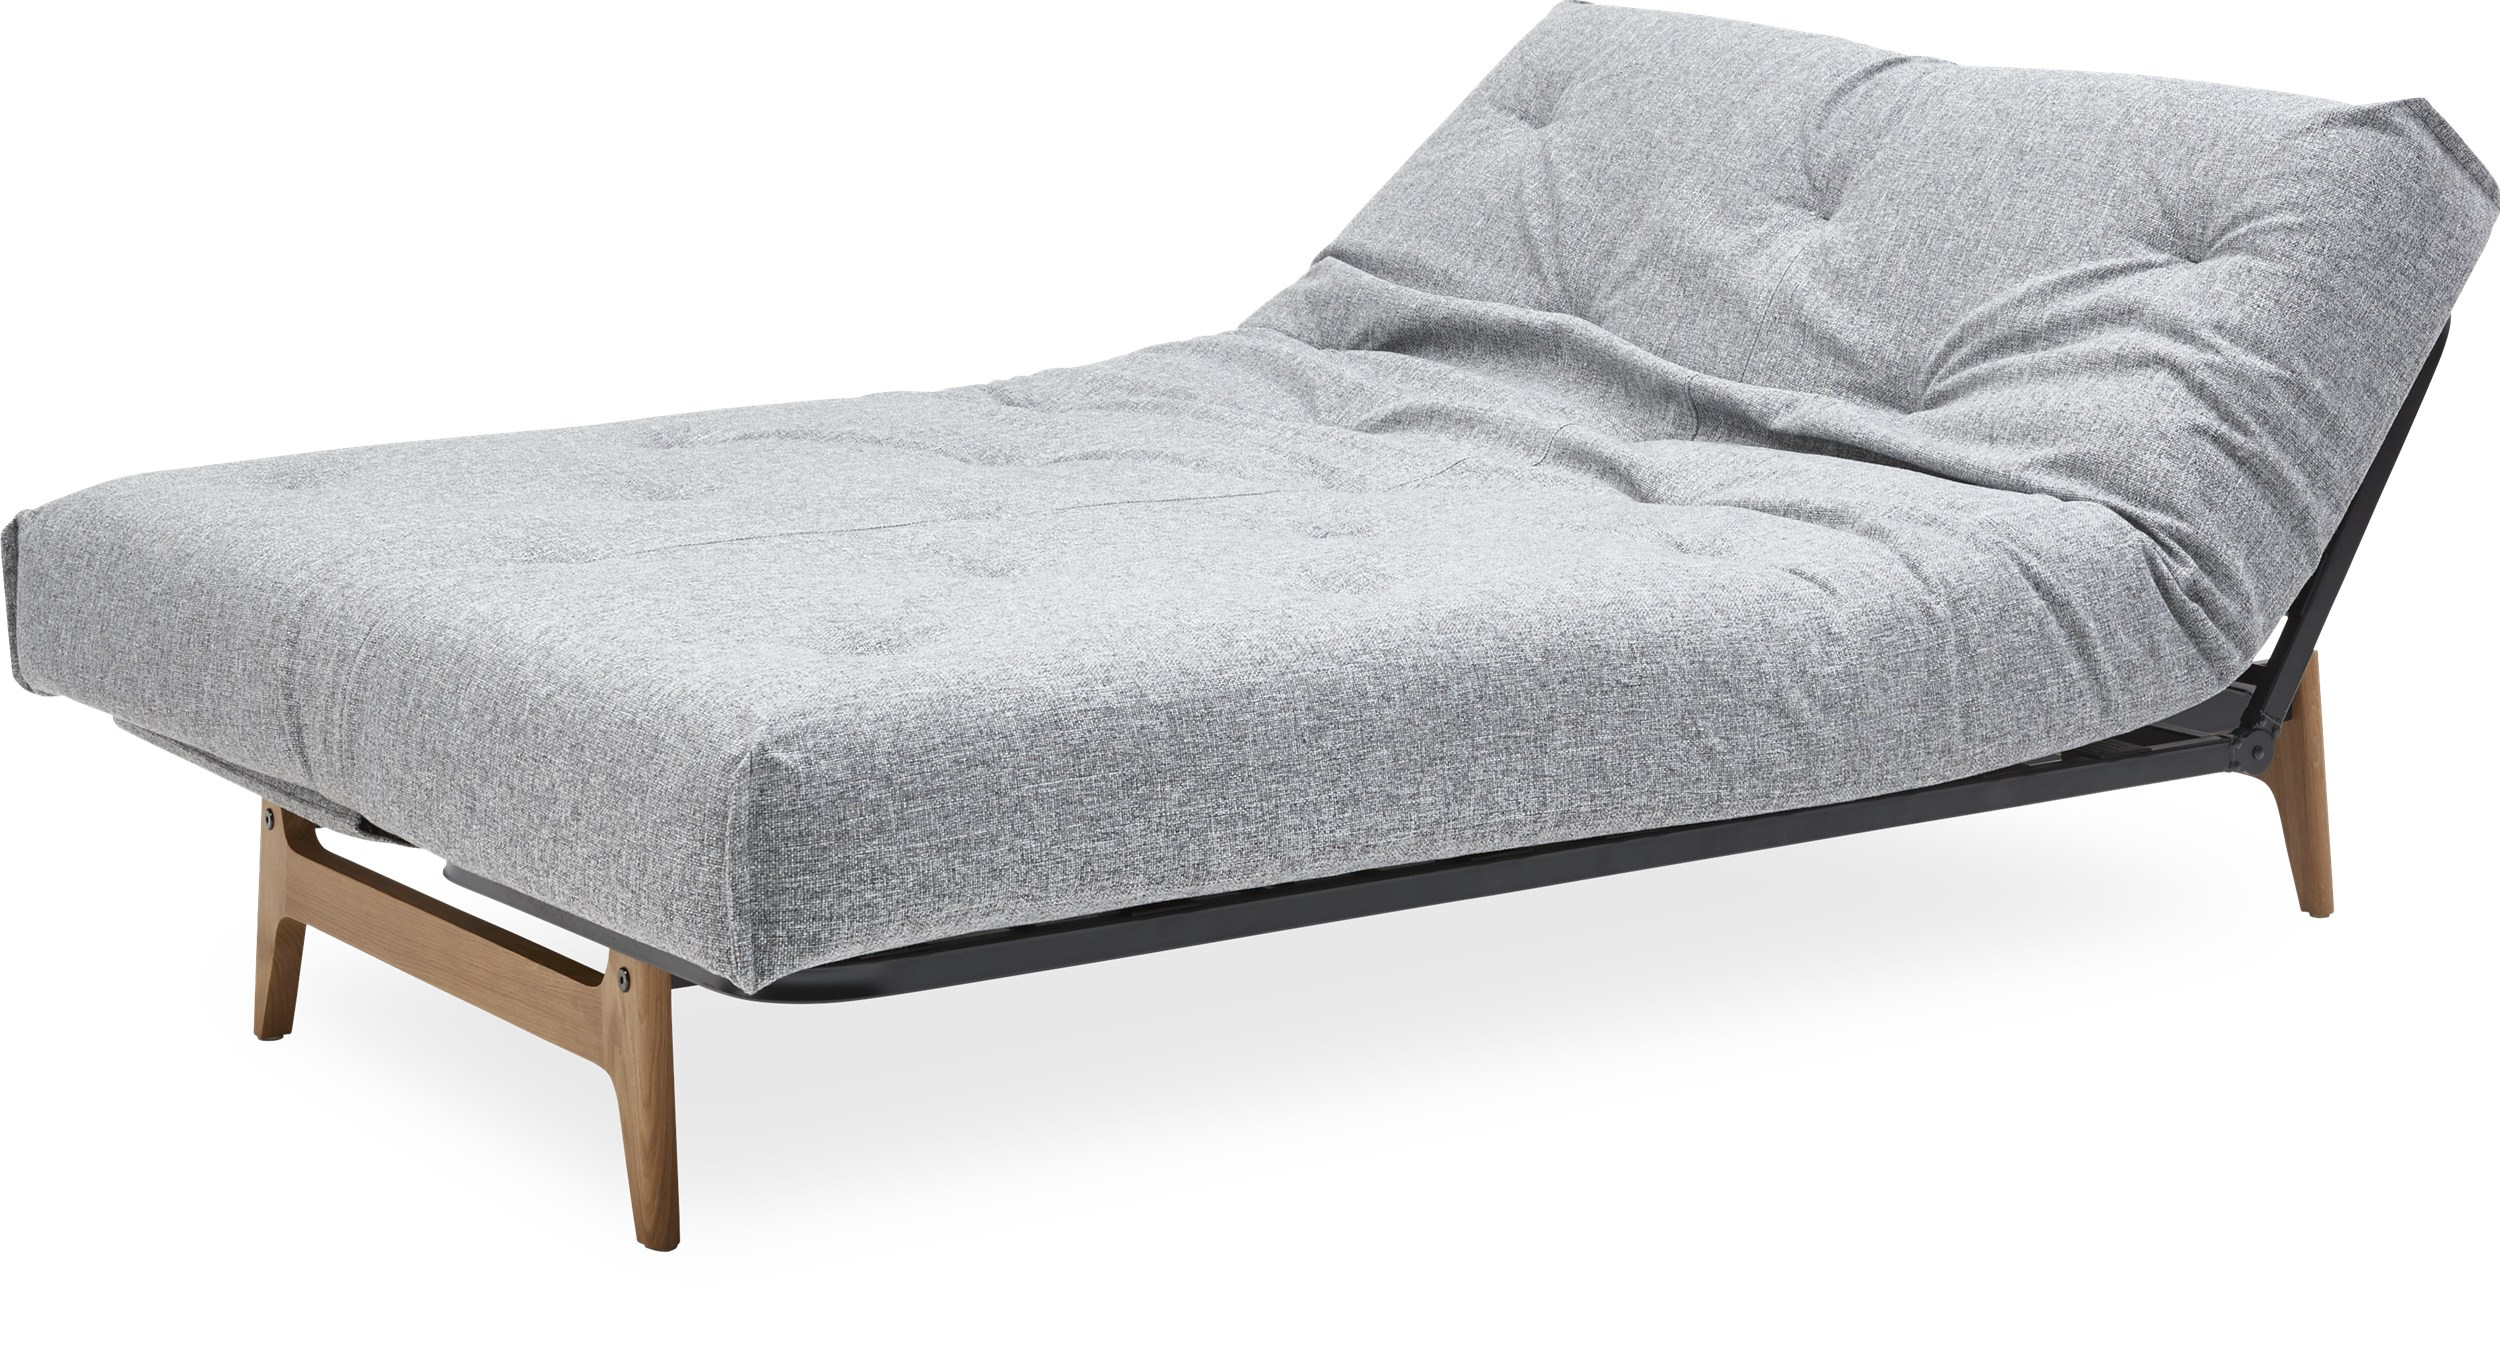 Innovation Living - Soft Spring Madrass till bäddsoffa (1 st.)